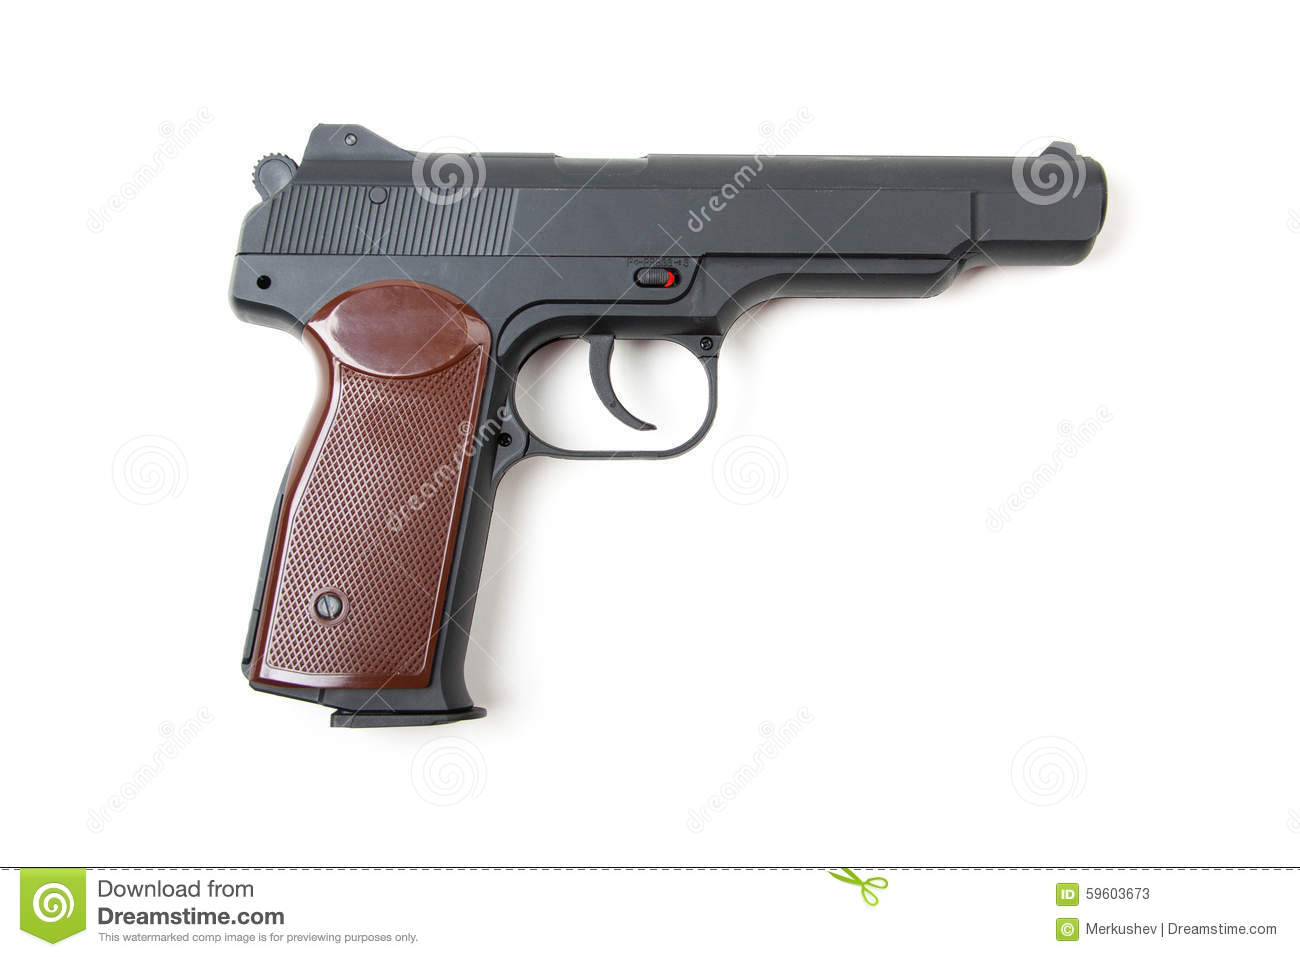 gun white background - photo #30